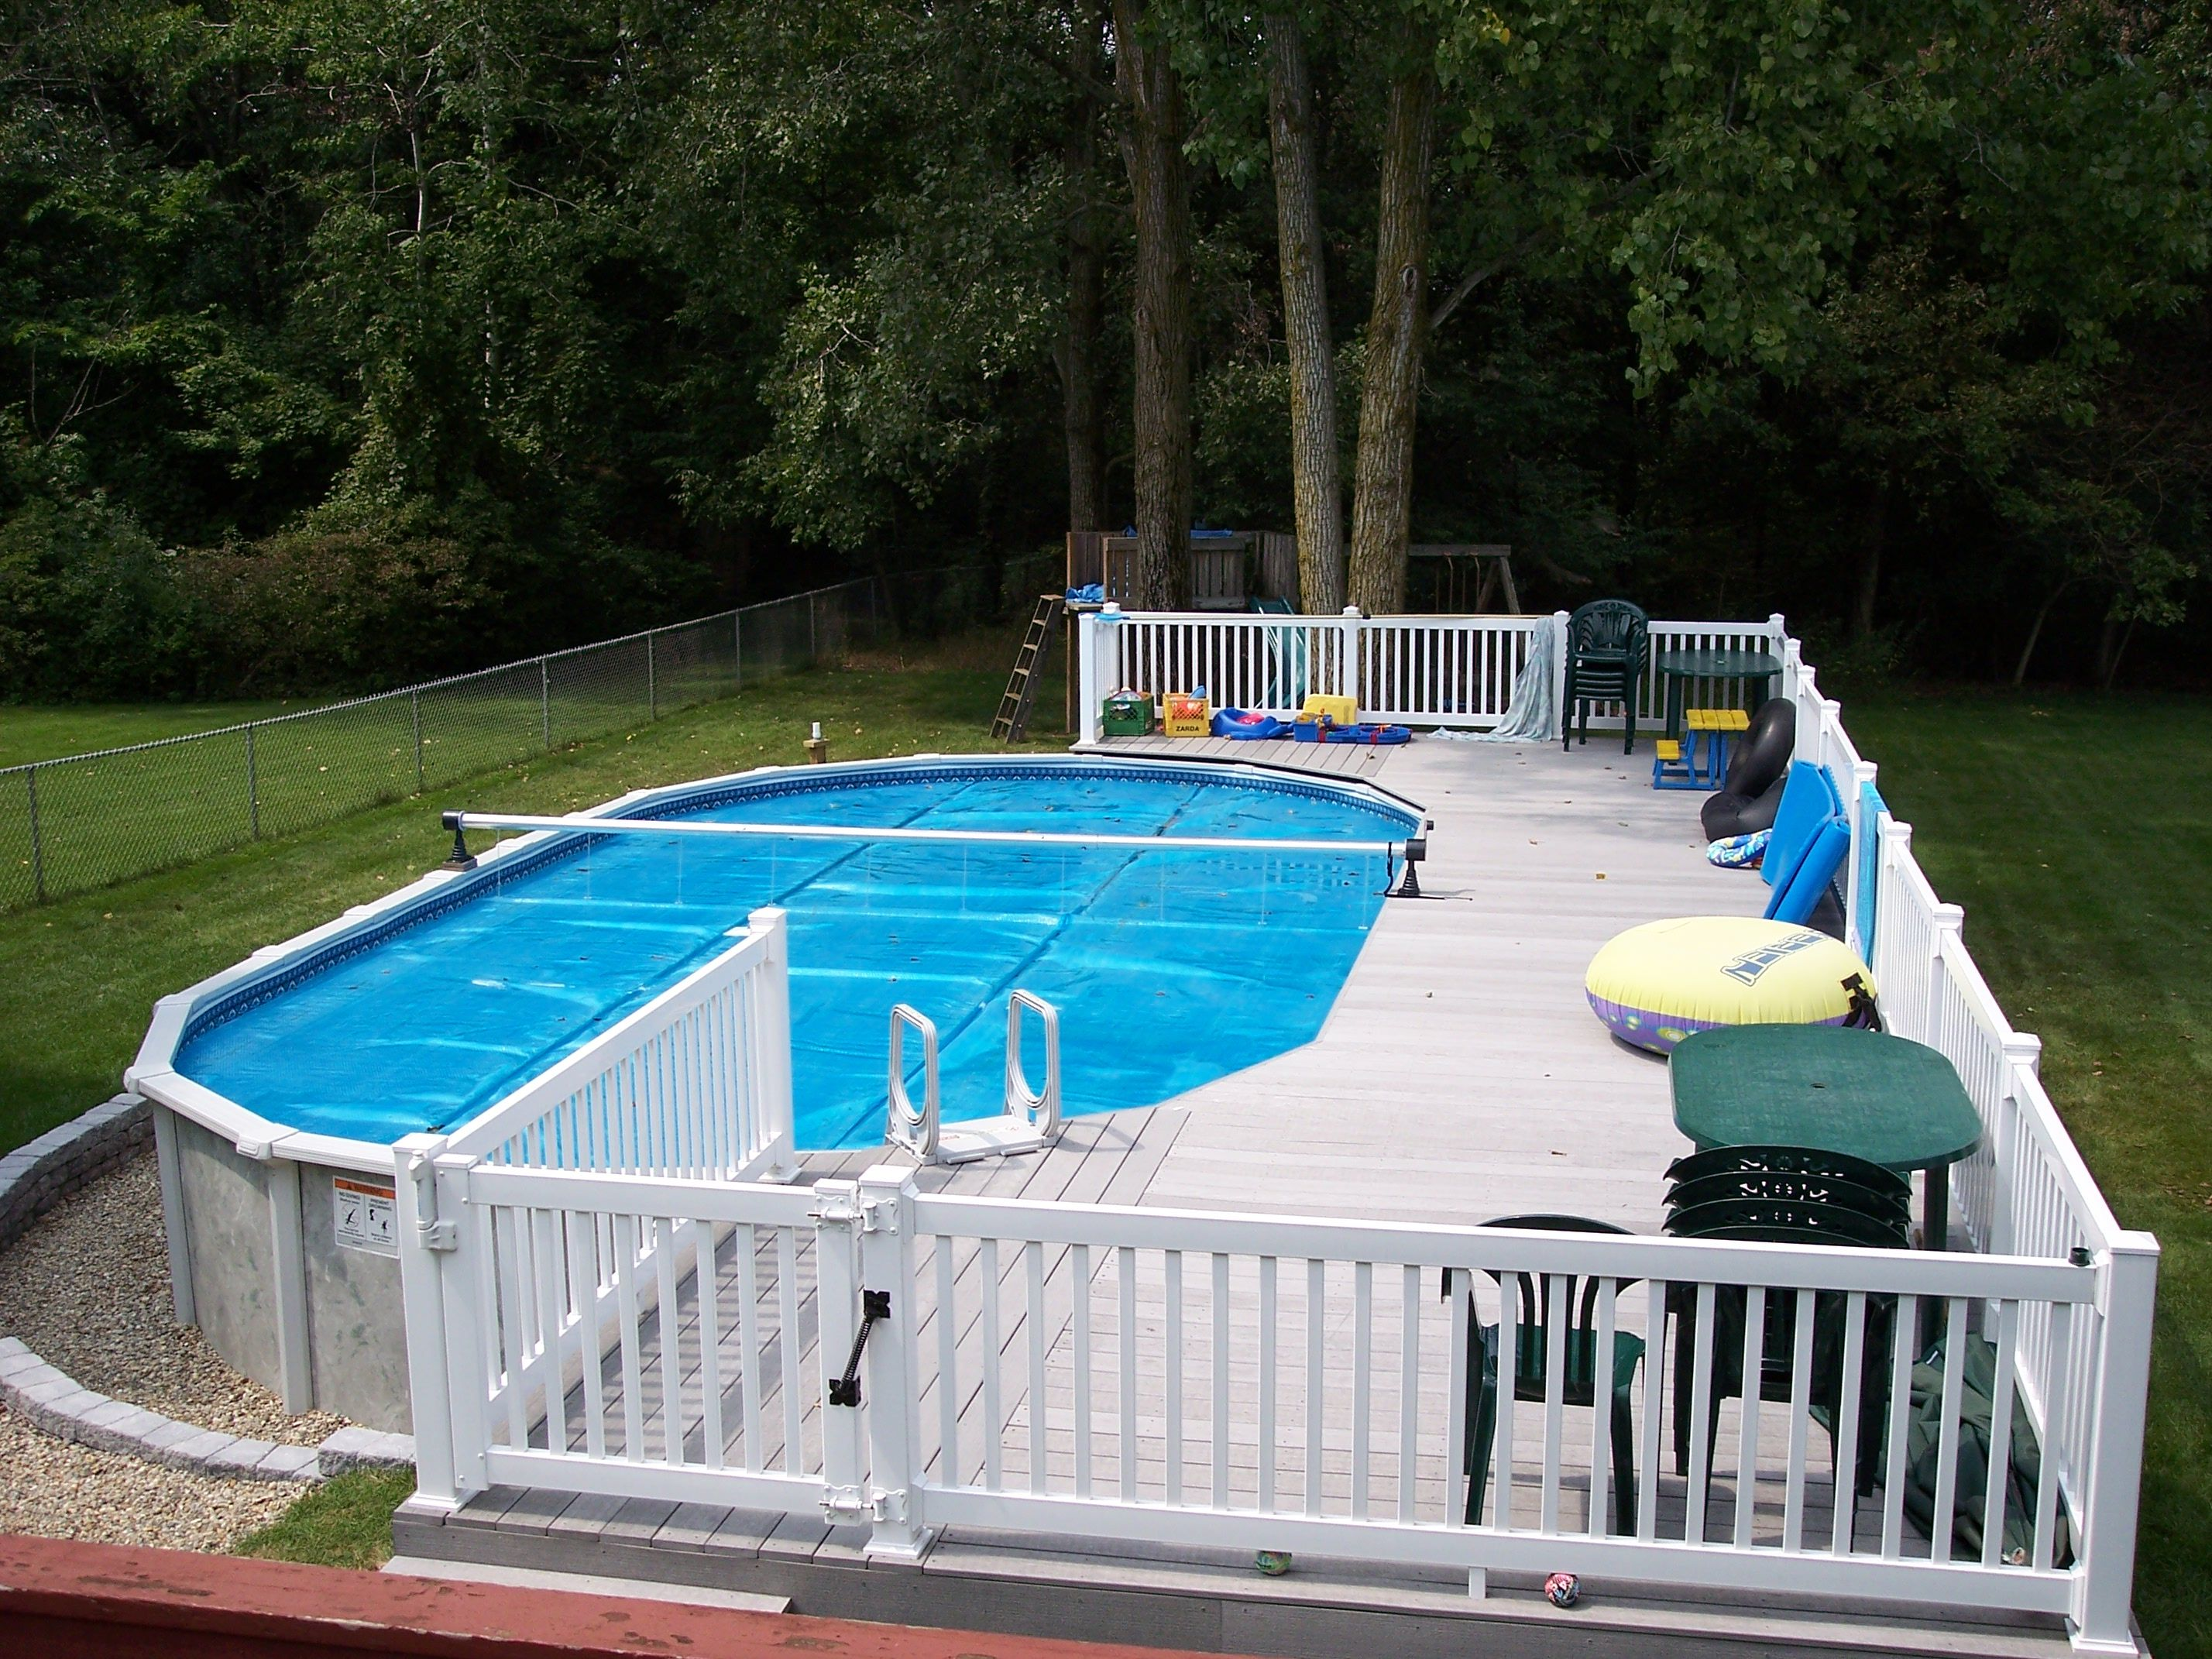 Economical versions for backyard fun. Swimming pools